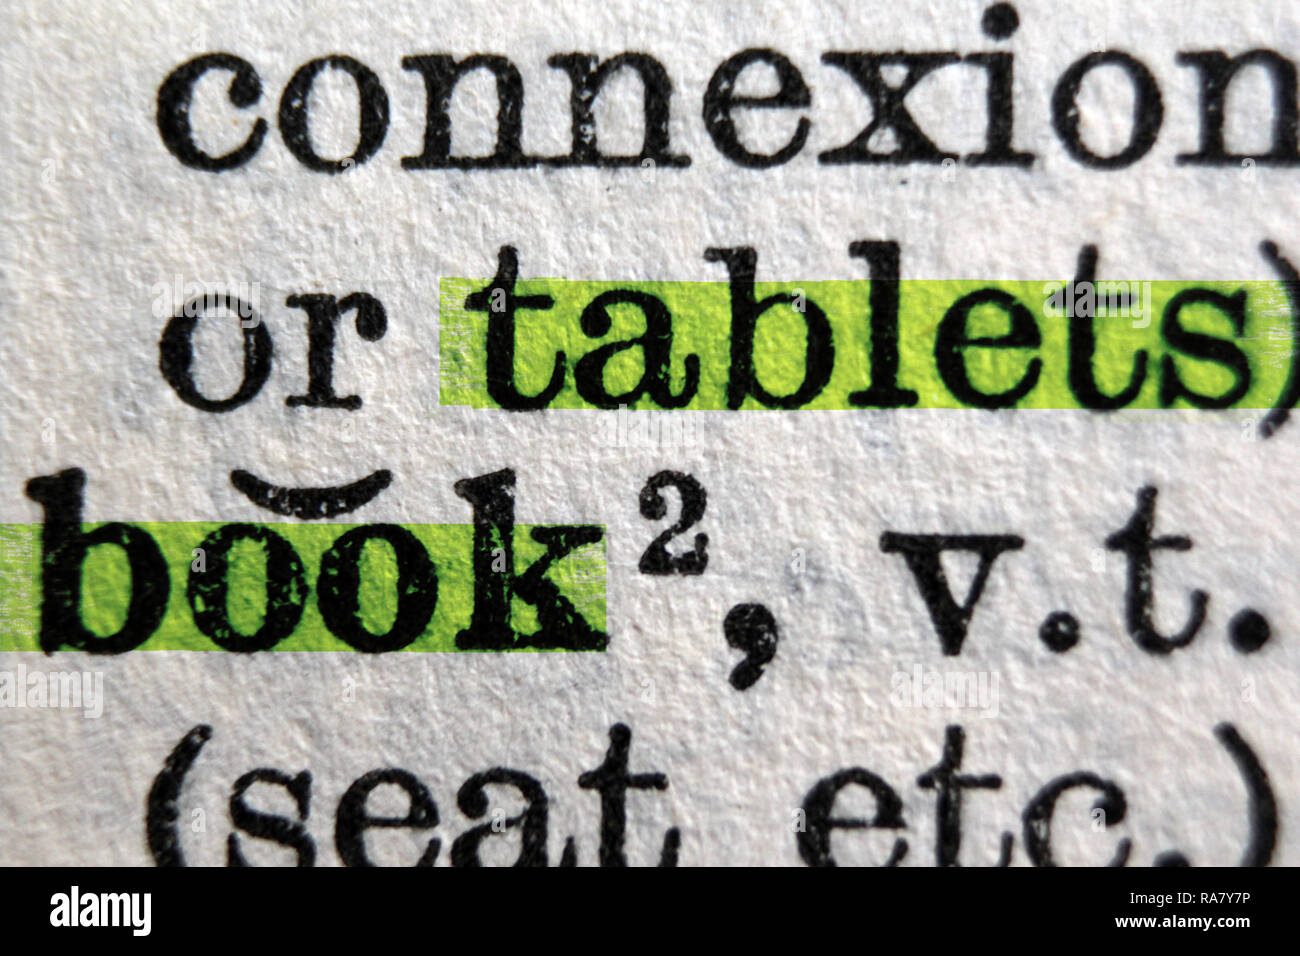 Connexion, tablets and book words highlighted on Oxford English Dictionary, close up - Stock Image